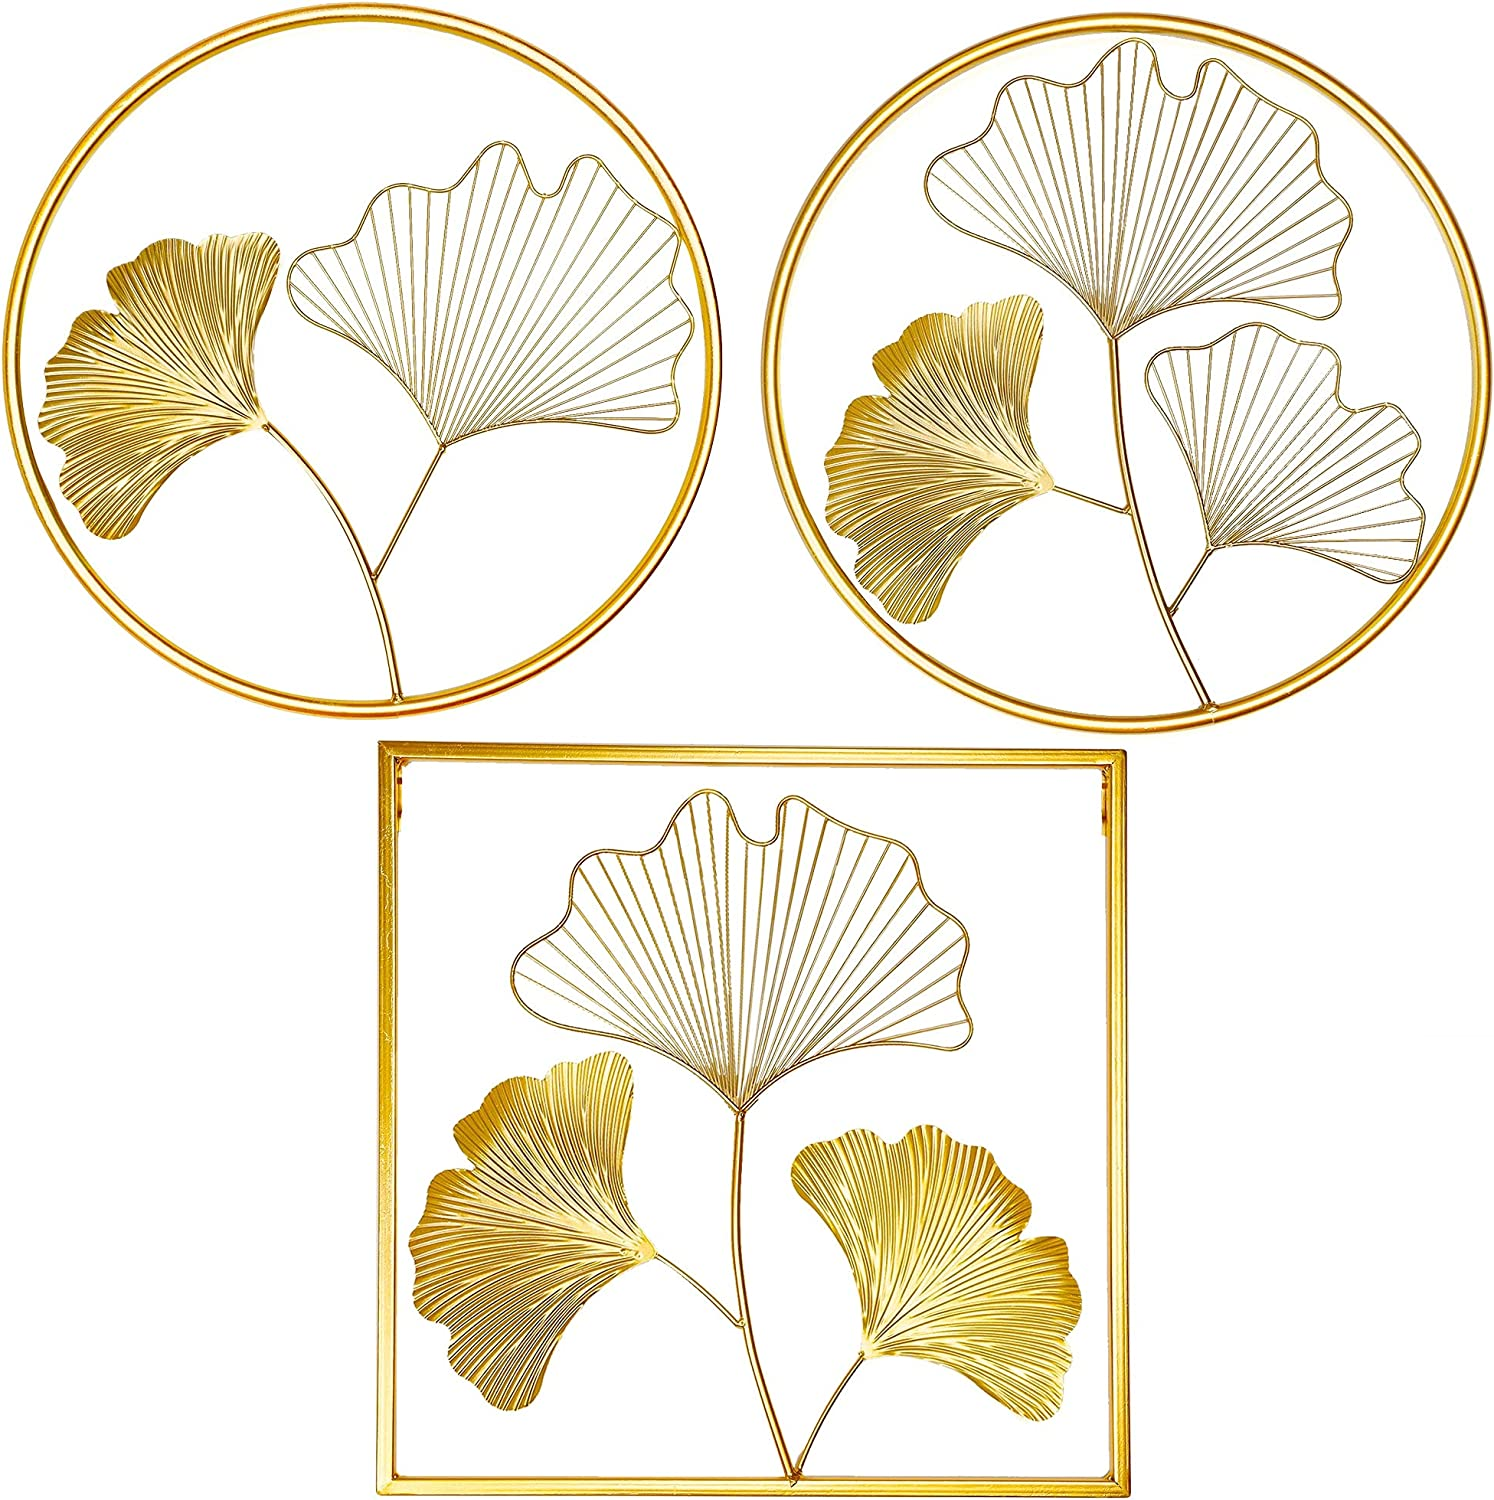 Meekear Gold Wall Decor, Set of 3 Golden Ginkgo Leaves Metal Wall Decor with Frame, Gold Metal Art Wall Sculpture for Living Room, Bedroom, Office, Study, Large